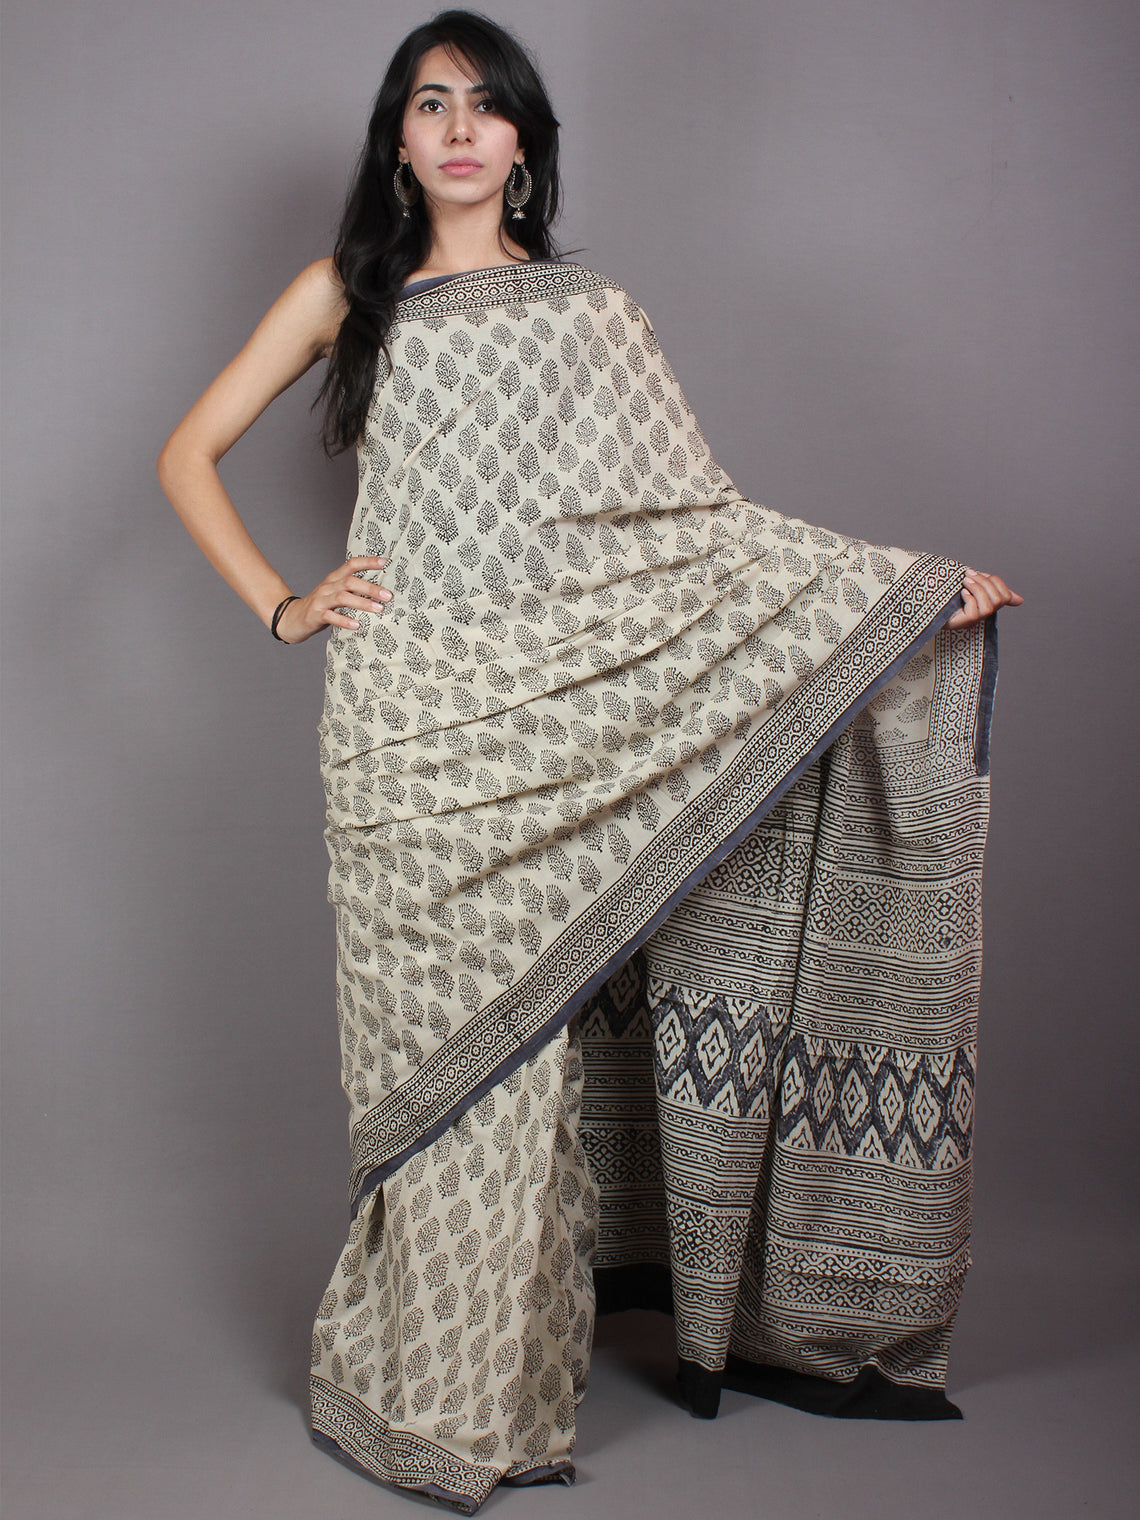 Beige Black Cotton Hand Block Printed Saree in Natural Colors - S03170531